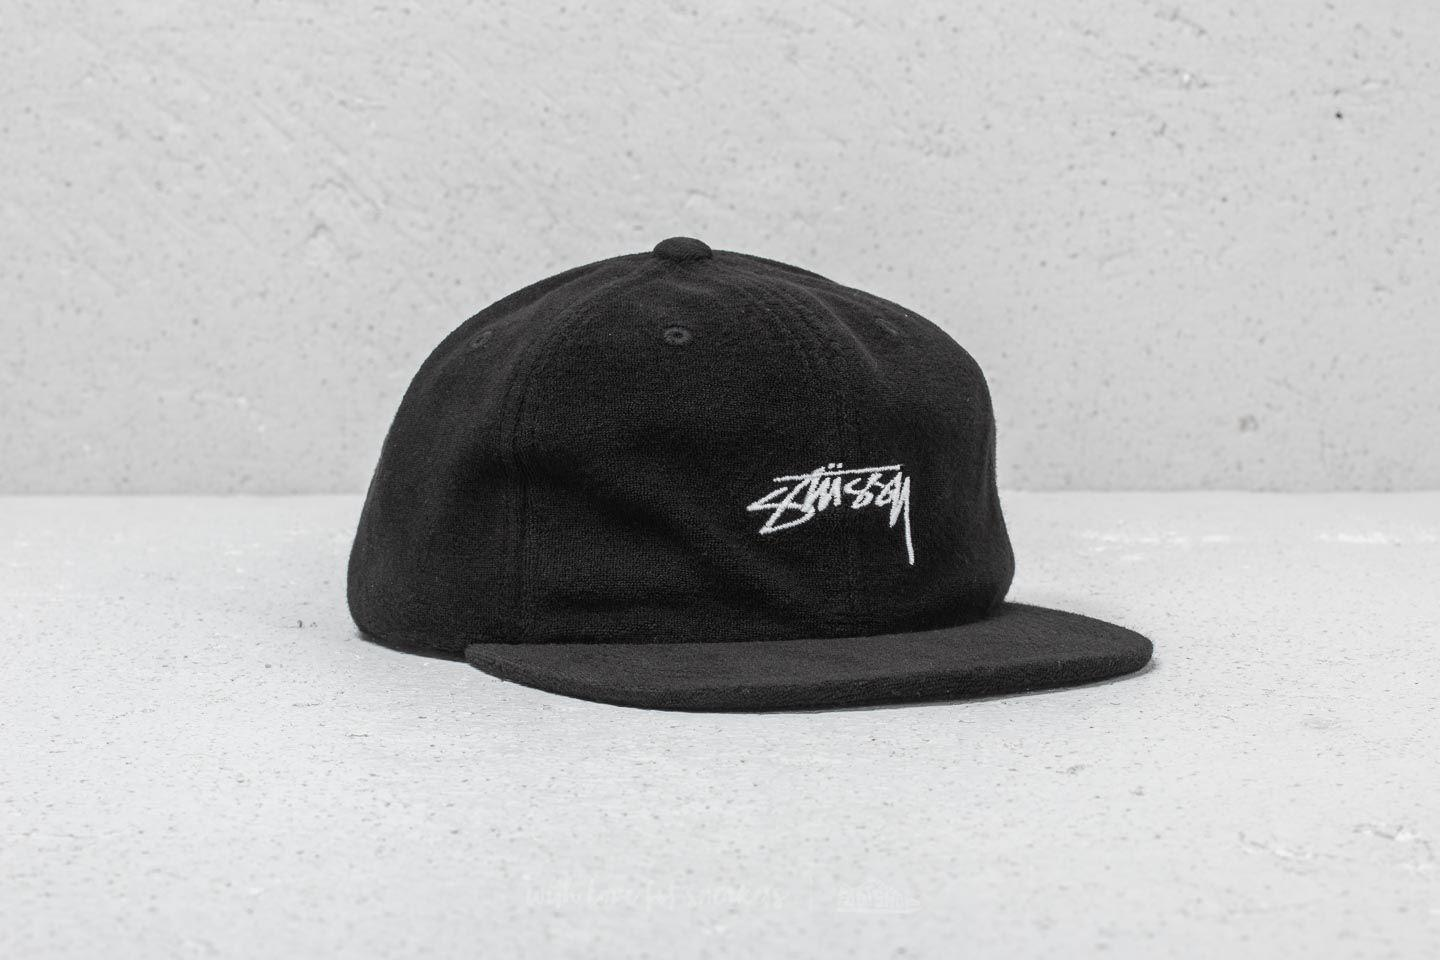 19a8520e8ee Lyst - Stussy Terry Cloth Cap Black in Black for Men